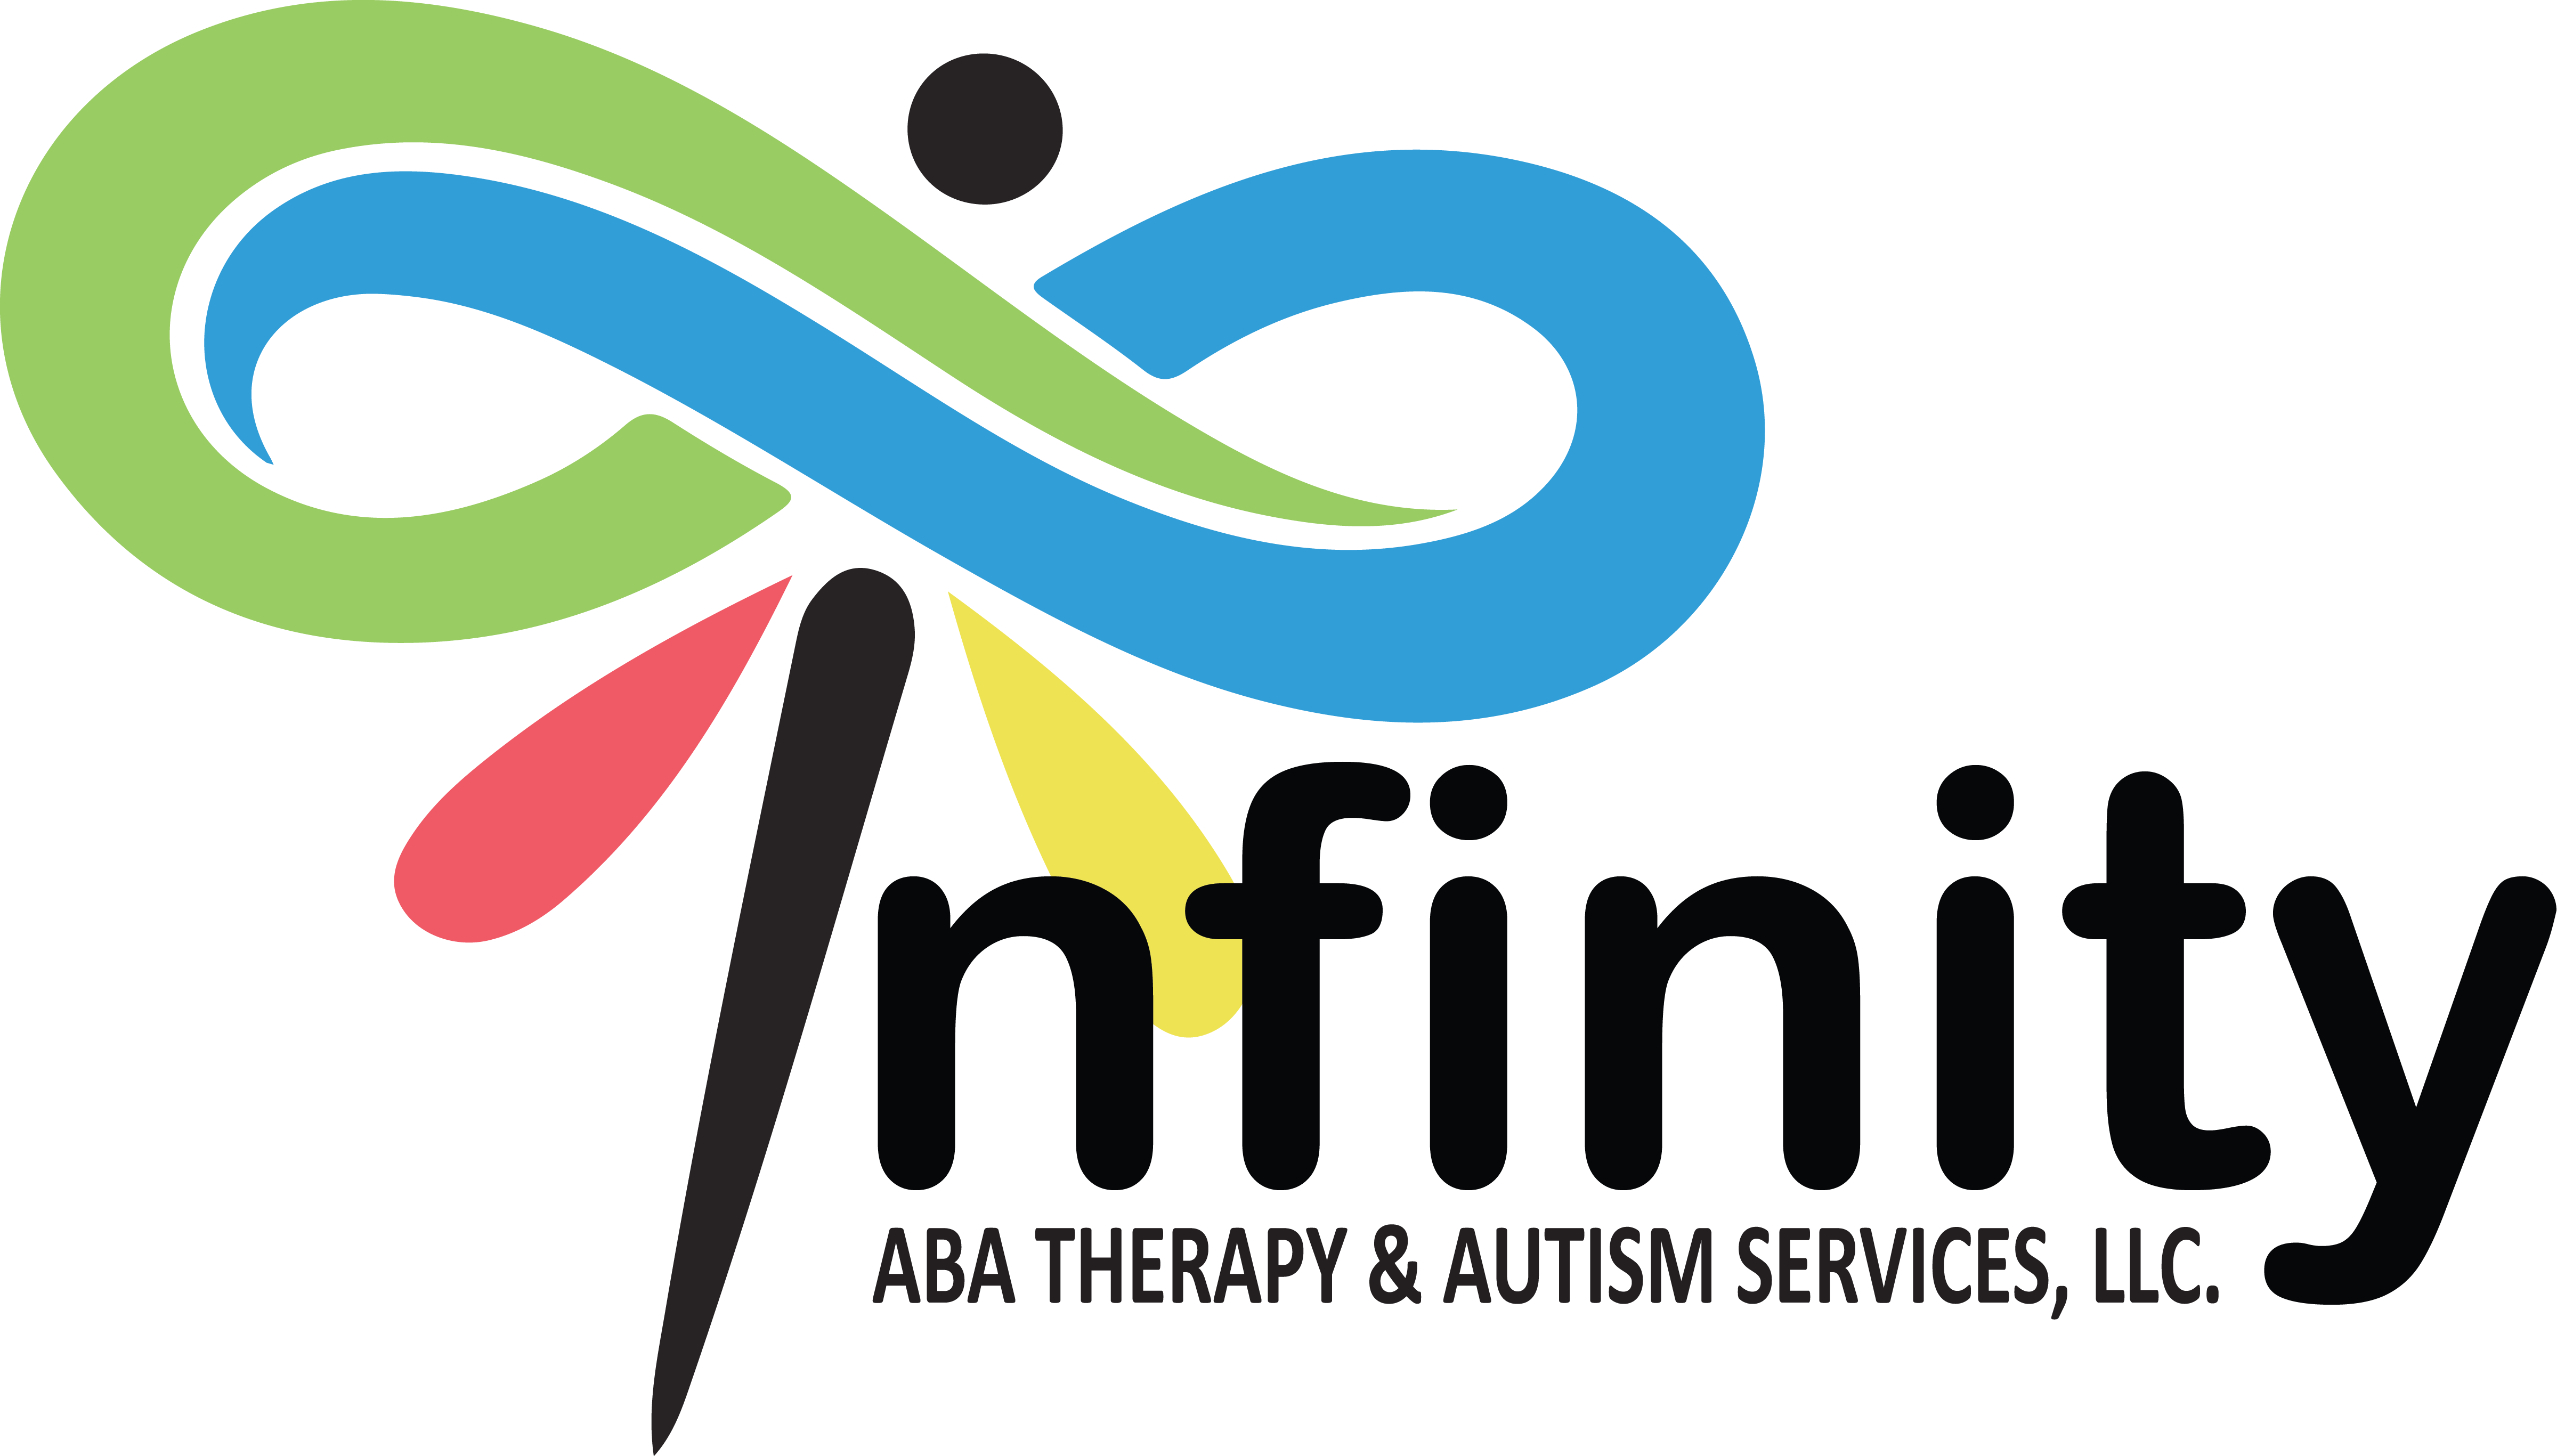 Infinity ABA Therapy Autism Services